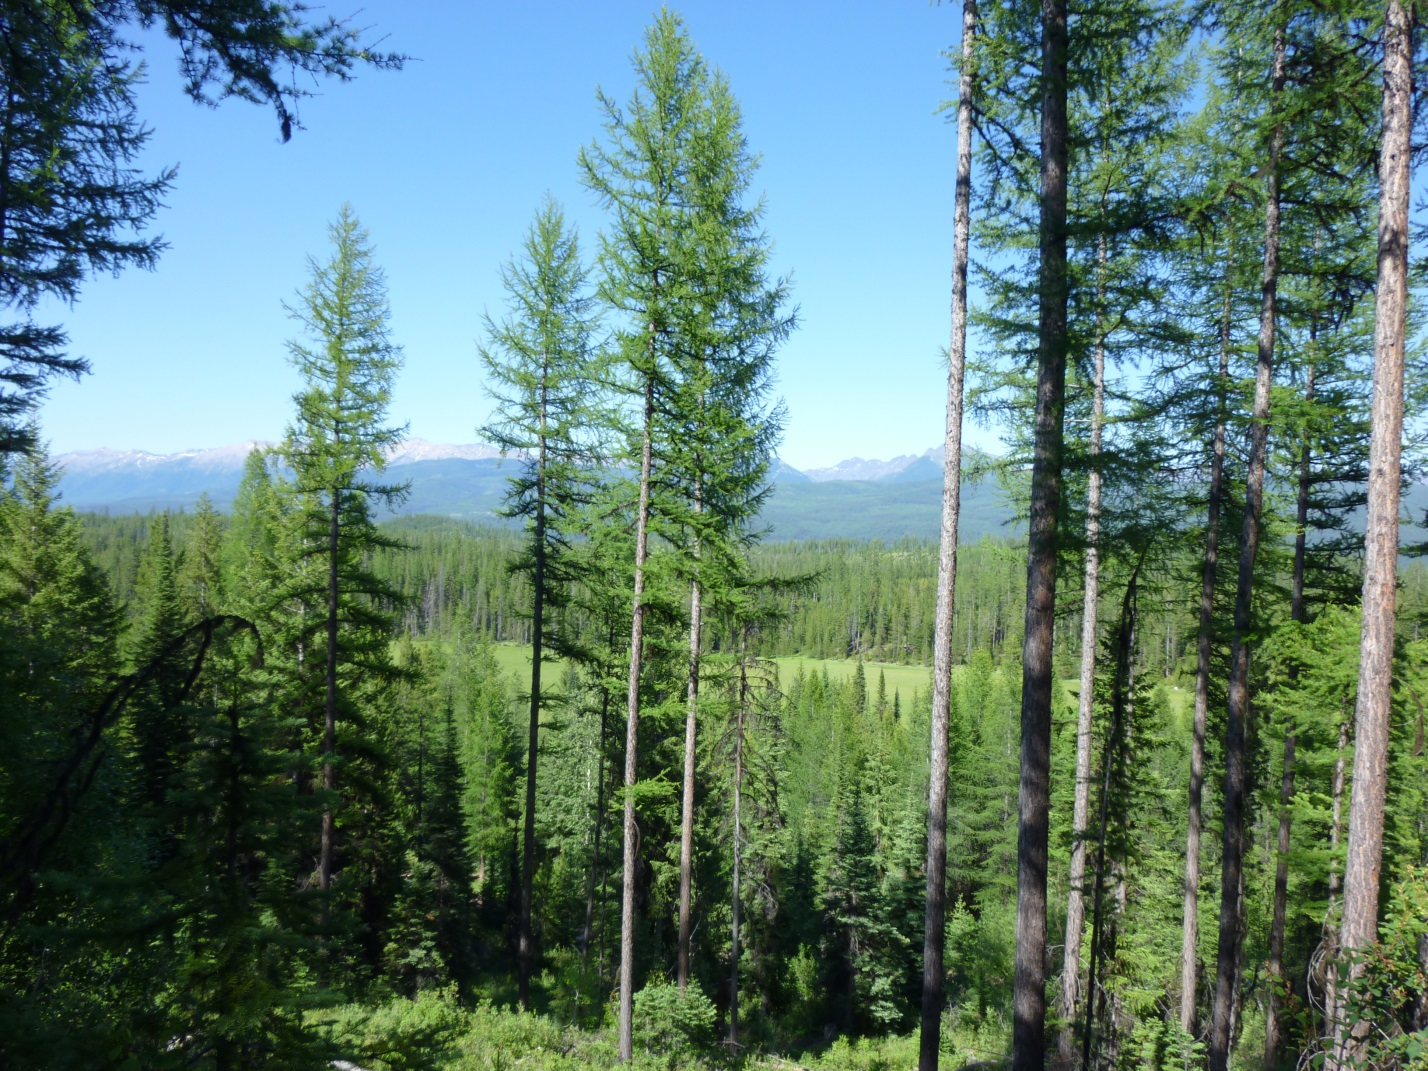 Marshall Creek Wildlife Management Area, 640 acres along Deer Creek in Seeley Lake area acquired by Montana Fish Wildlife and Parks and incorporated into the over 24,000 acre Wildlife Management Area.